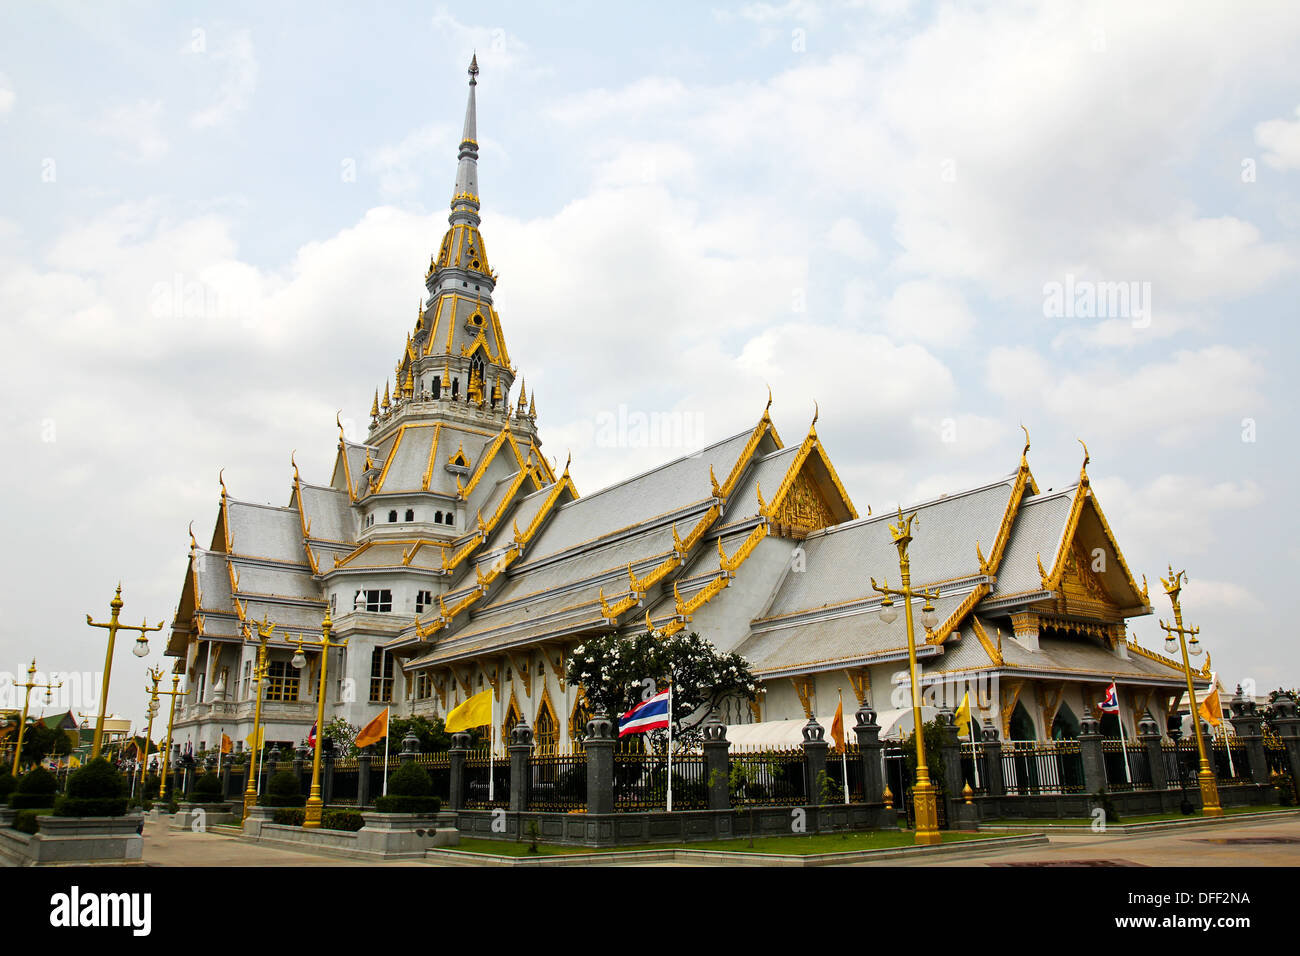 A great marble church, Wat Sothorn, Chachoengsao Thailand - Stock Image